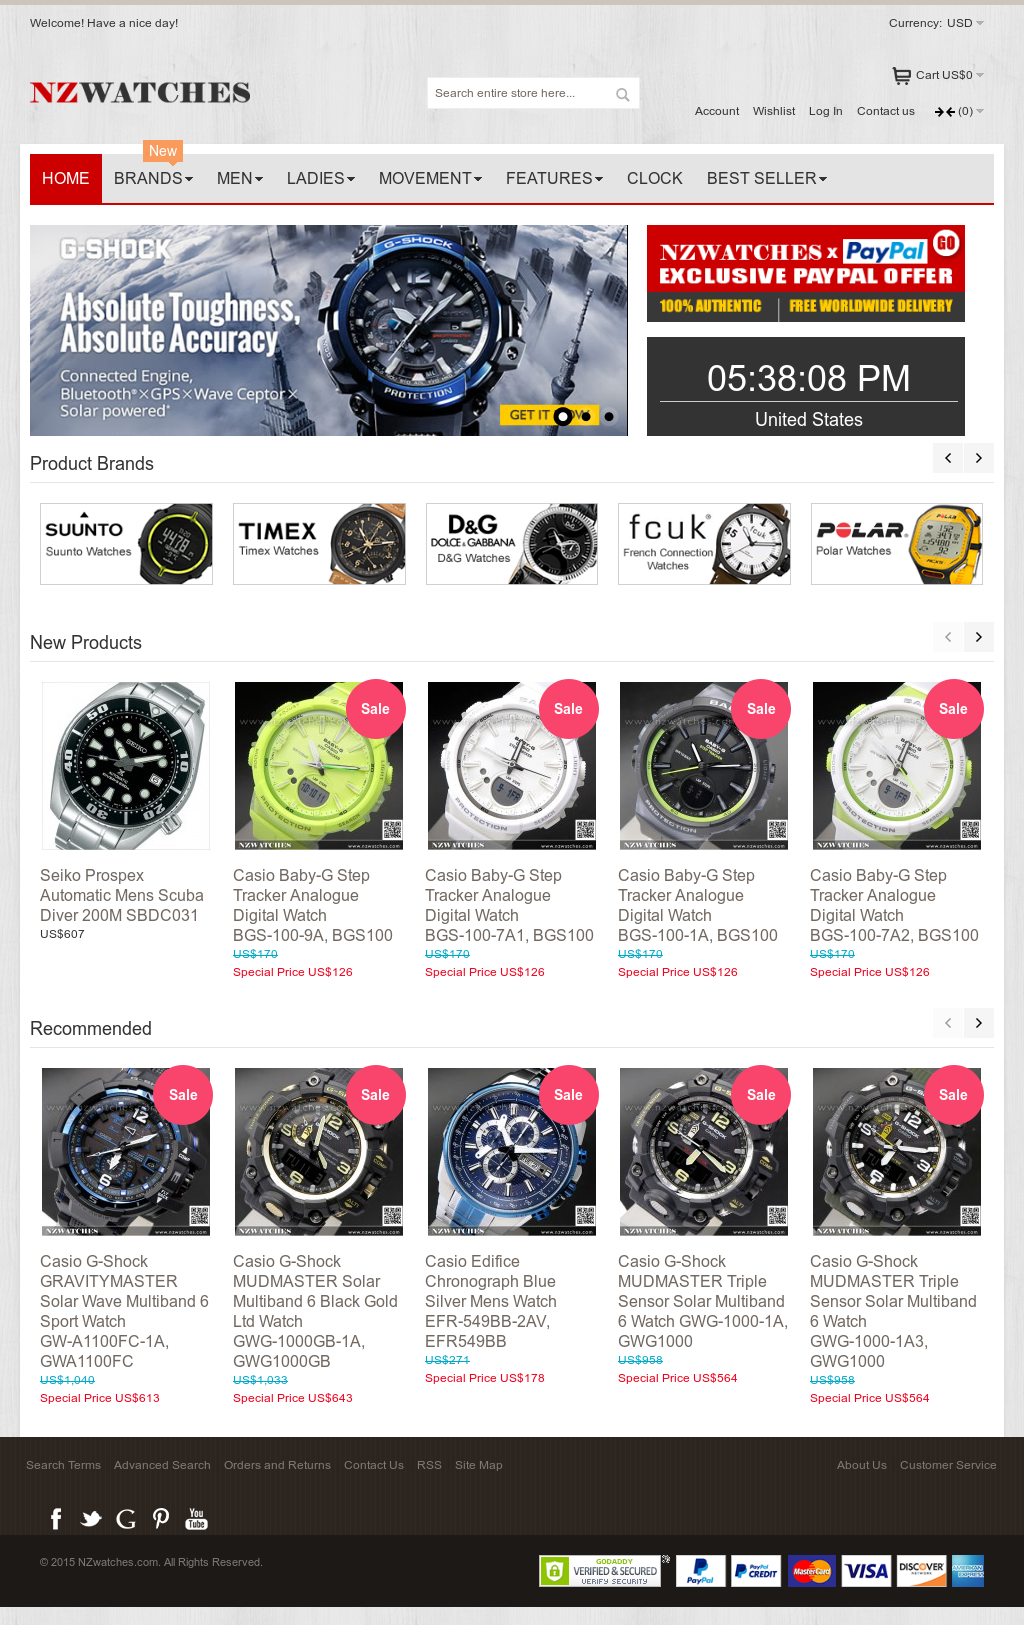 Nzwatches Competitors 517870b453cd